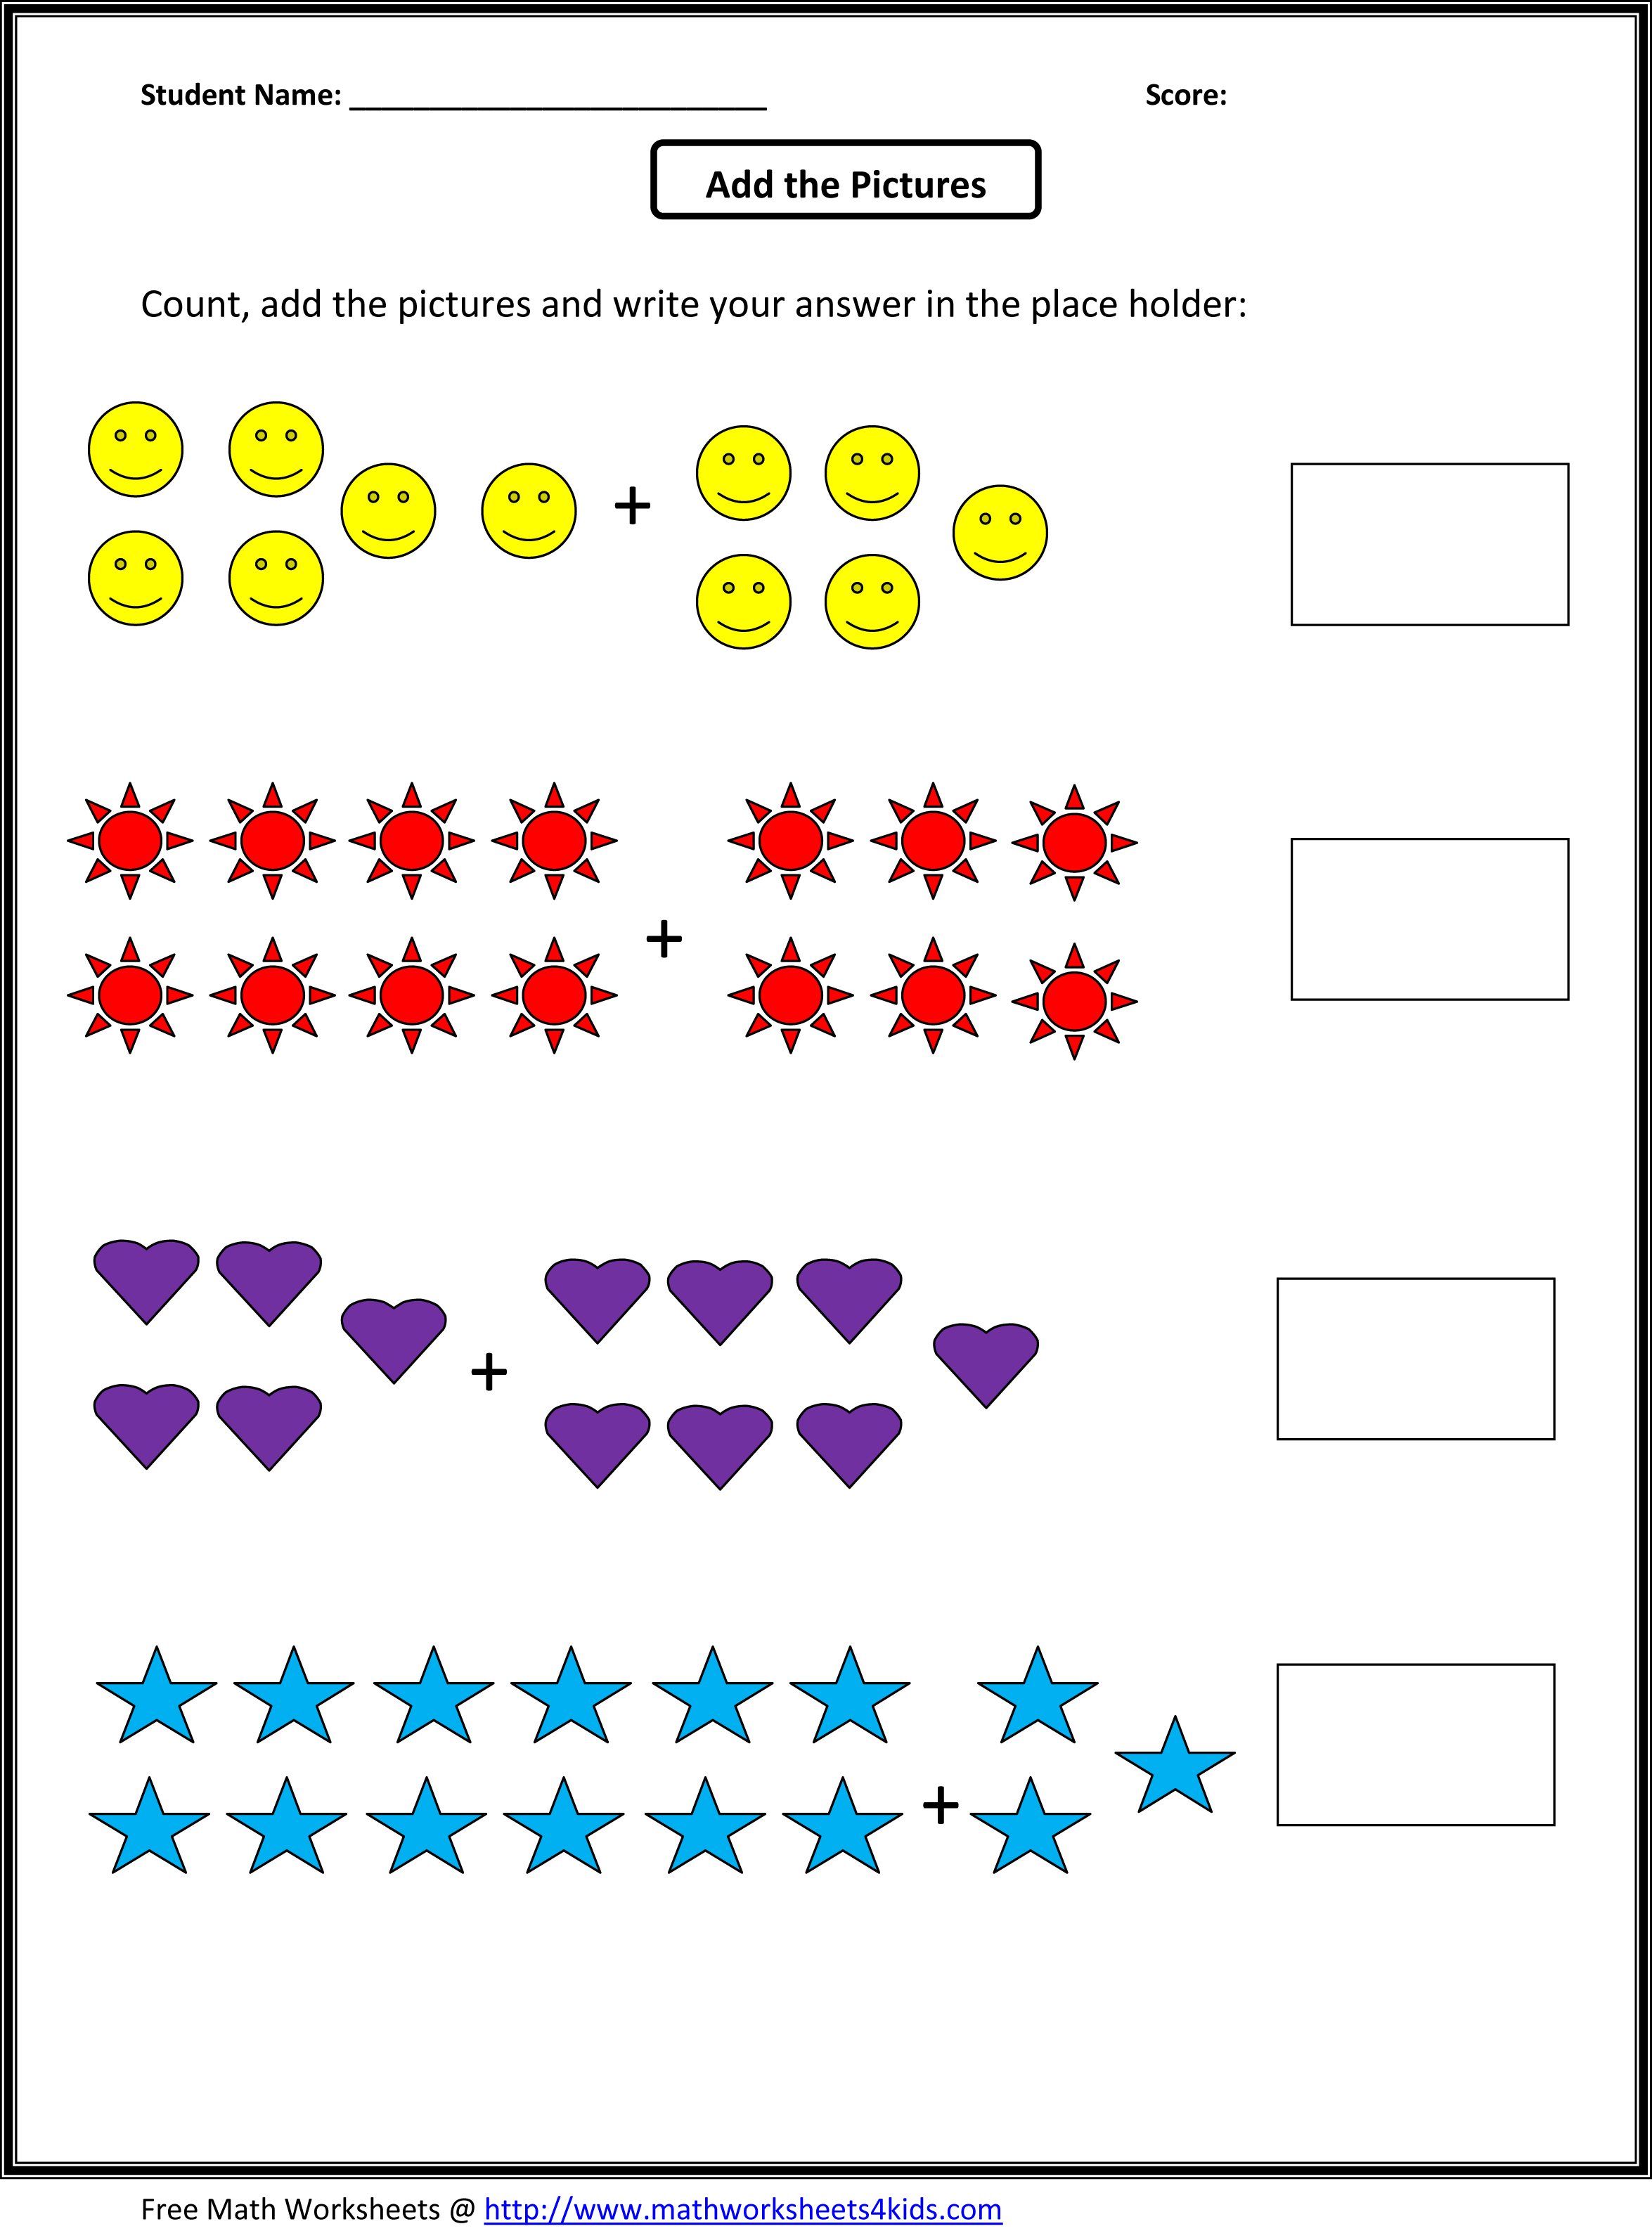 Proatmealus  Marvellous Grade  Maths Worksheet  Reocurent With Interesting Math Worksheets For St Grade Free  Reocurent With Enchanting Nd Grade Math Worksheets Subtraction Also Measuring With A Ruler Worksheets In Addition Preschool Free Printable Worksheets And Three Dimensional Shapes Worksheet As Well As Merging Worksheets In Excel Additionally Worksheets For From Reocurentcom With Proatmealus  Interesting Grade  Maths Worksheet  Reocurent With Enchanting Math Worksheets For St Grade Free  Reocurent And Marvellous Nd Grade Math Worksheets Subtraction Also Measuring With A Ruler Worksheets In Addition Preschool Free Printable Worksheets From Reocurentcom